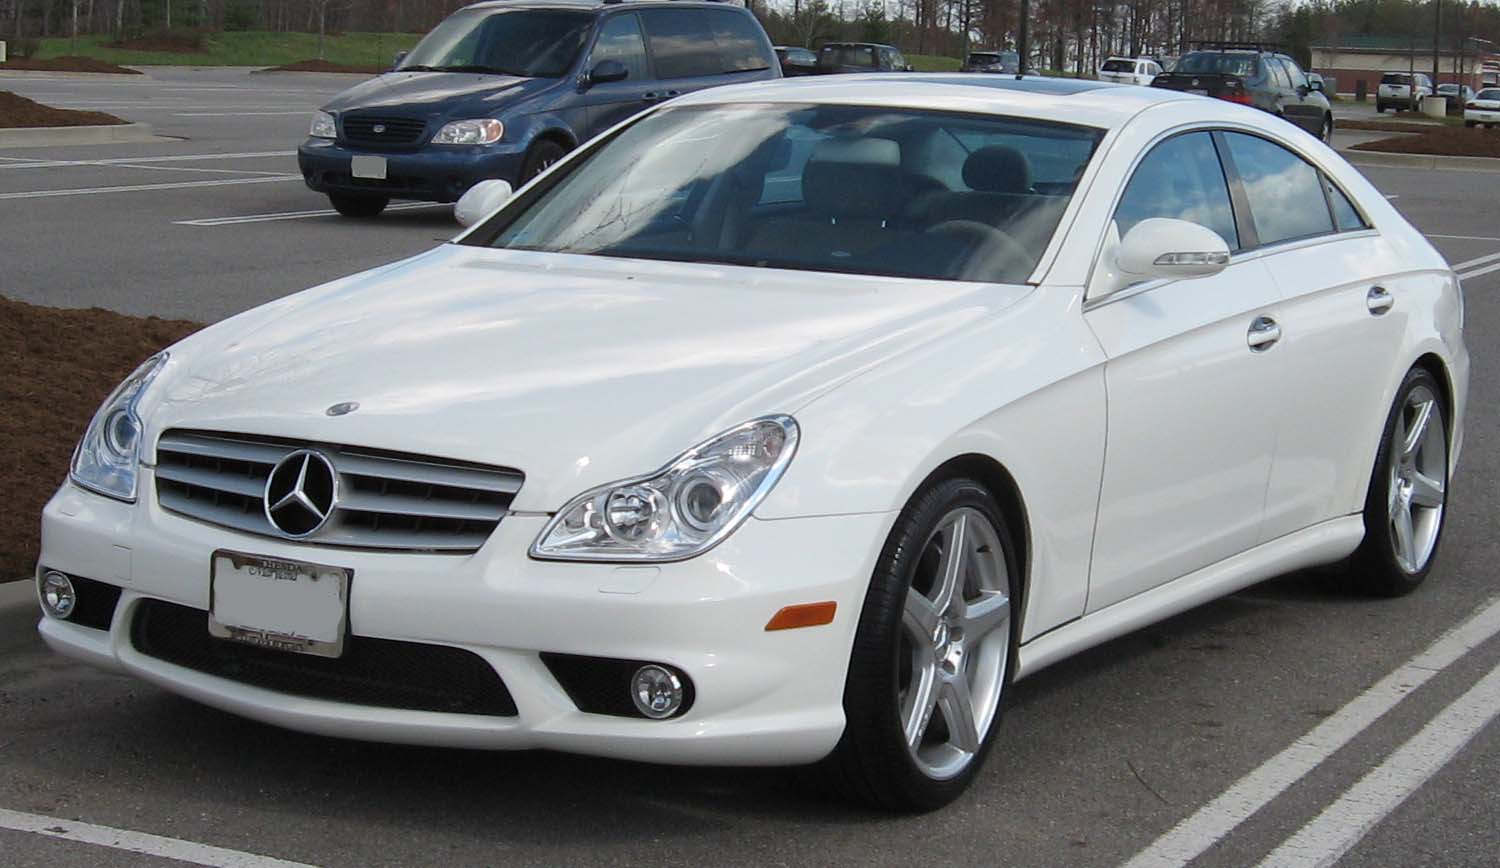 Mercedes benz cls55 amg fastest cars online for 2006 mercedes benz amg